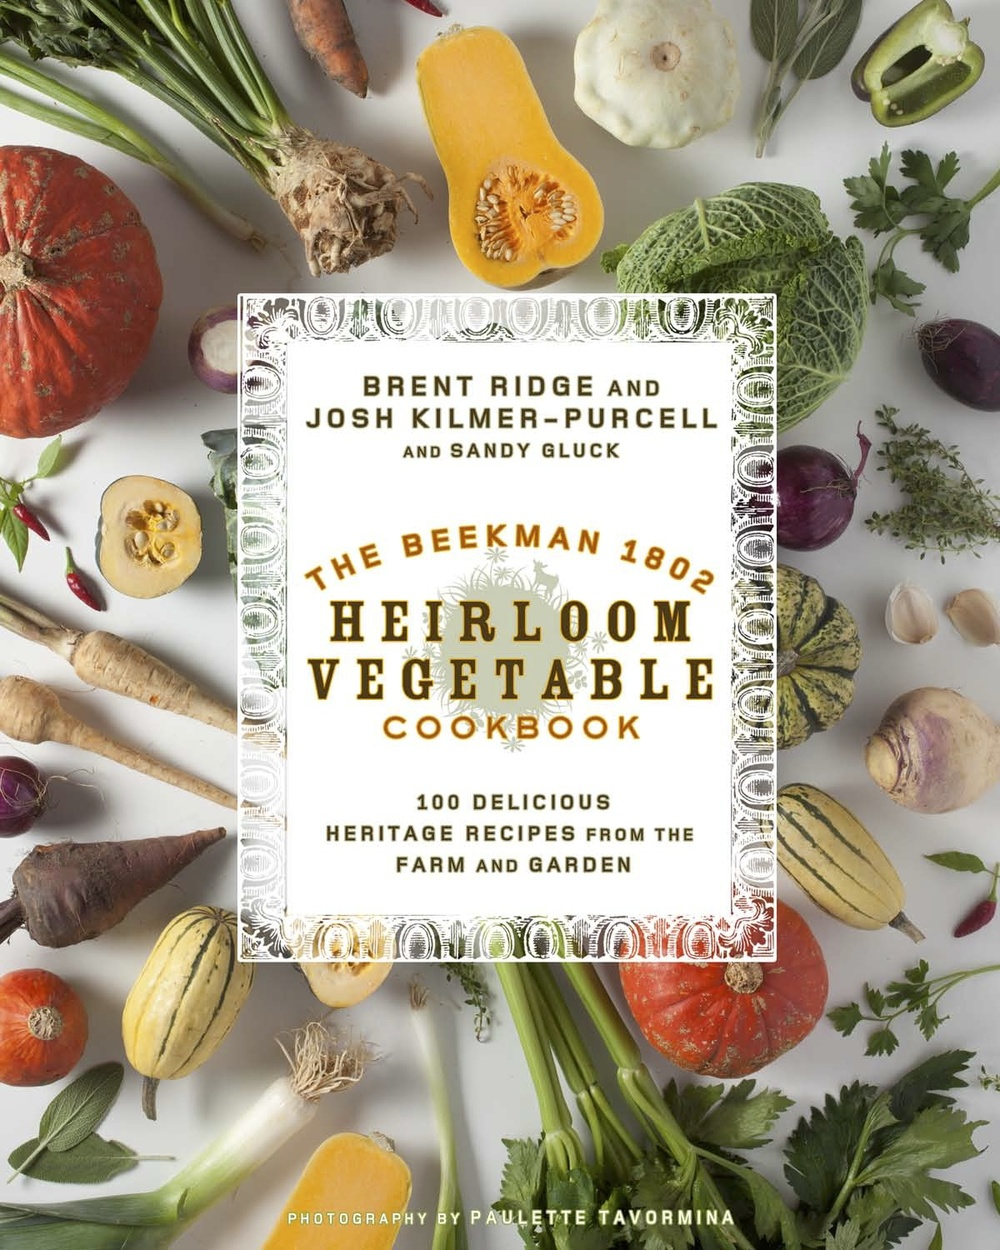 Beekman 1802 Heirloom Vegetable Cookbook available May 2014